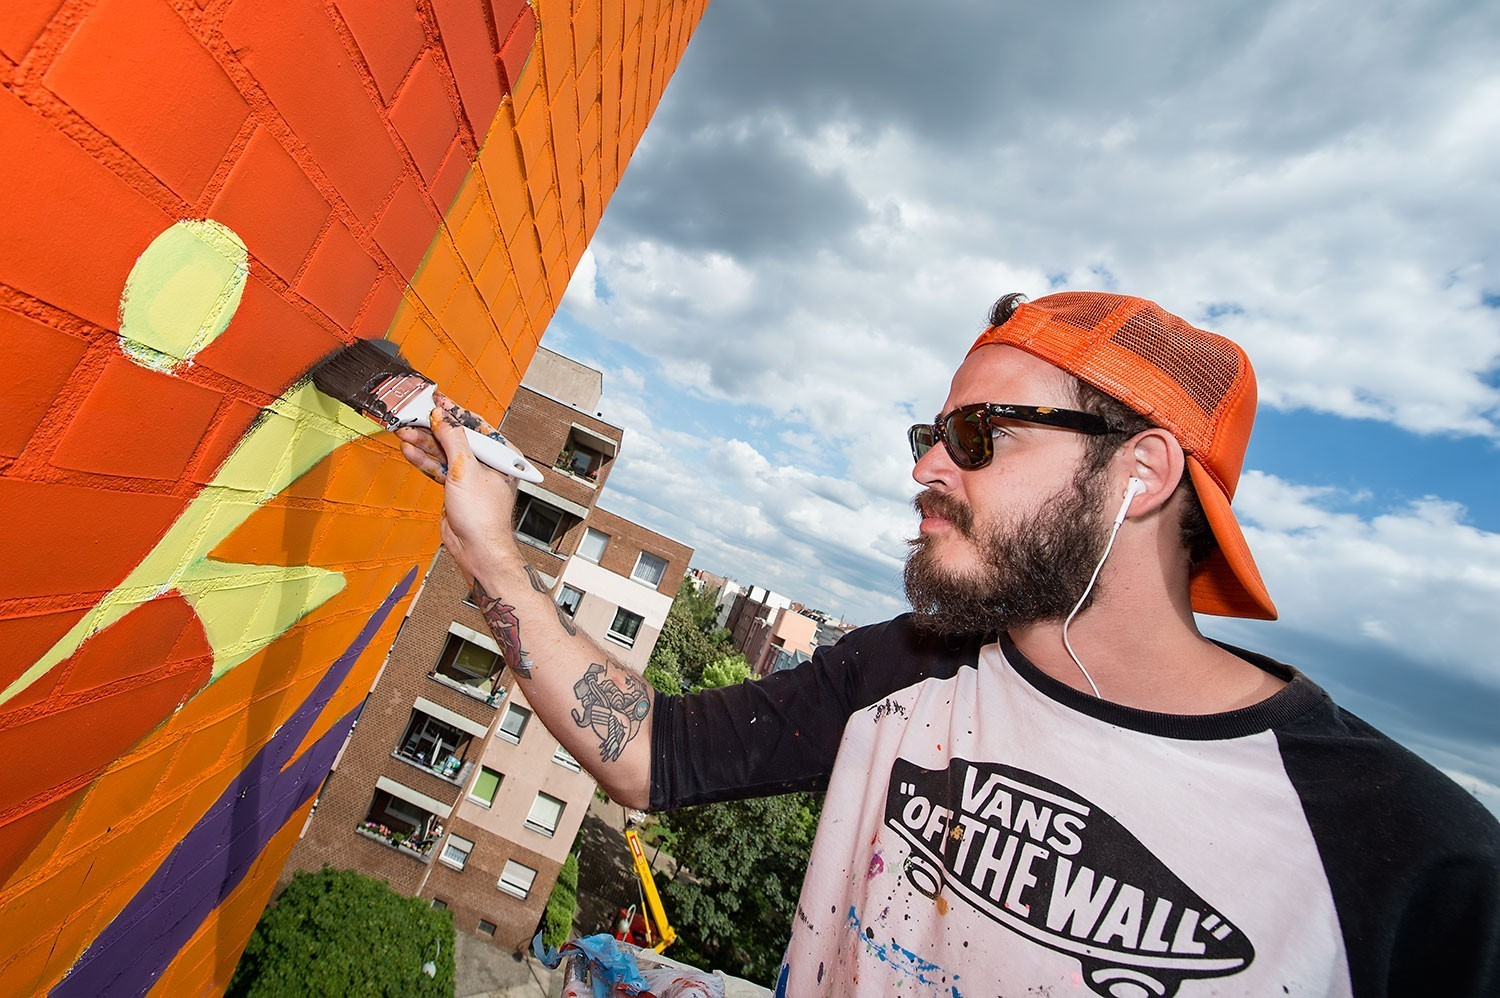 """Invited by URBAN NATION MUSEUM FOR URBAN CONTEMPORARY ART Director Yasha Young to bring summer flavors to Berlin, Project M/9 """"Colors"""" co-curators Charlotte Dutoit and Rom Levy of JUSTKIDS and StreetArtNews have selected 6 internationally acclaimed artists to create murals around the future museum building in Bülowstrasse 7, in Berlin-Schöneberg, from June 06 till June 12, 2016. #projectM #UrbanNation #MuseumofUrbanAndContemporaryArt #Berlin"""